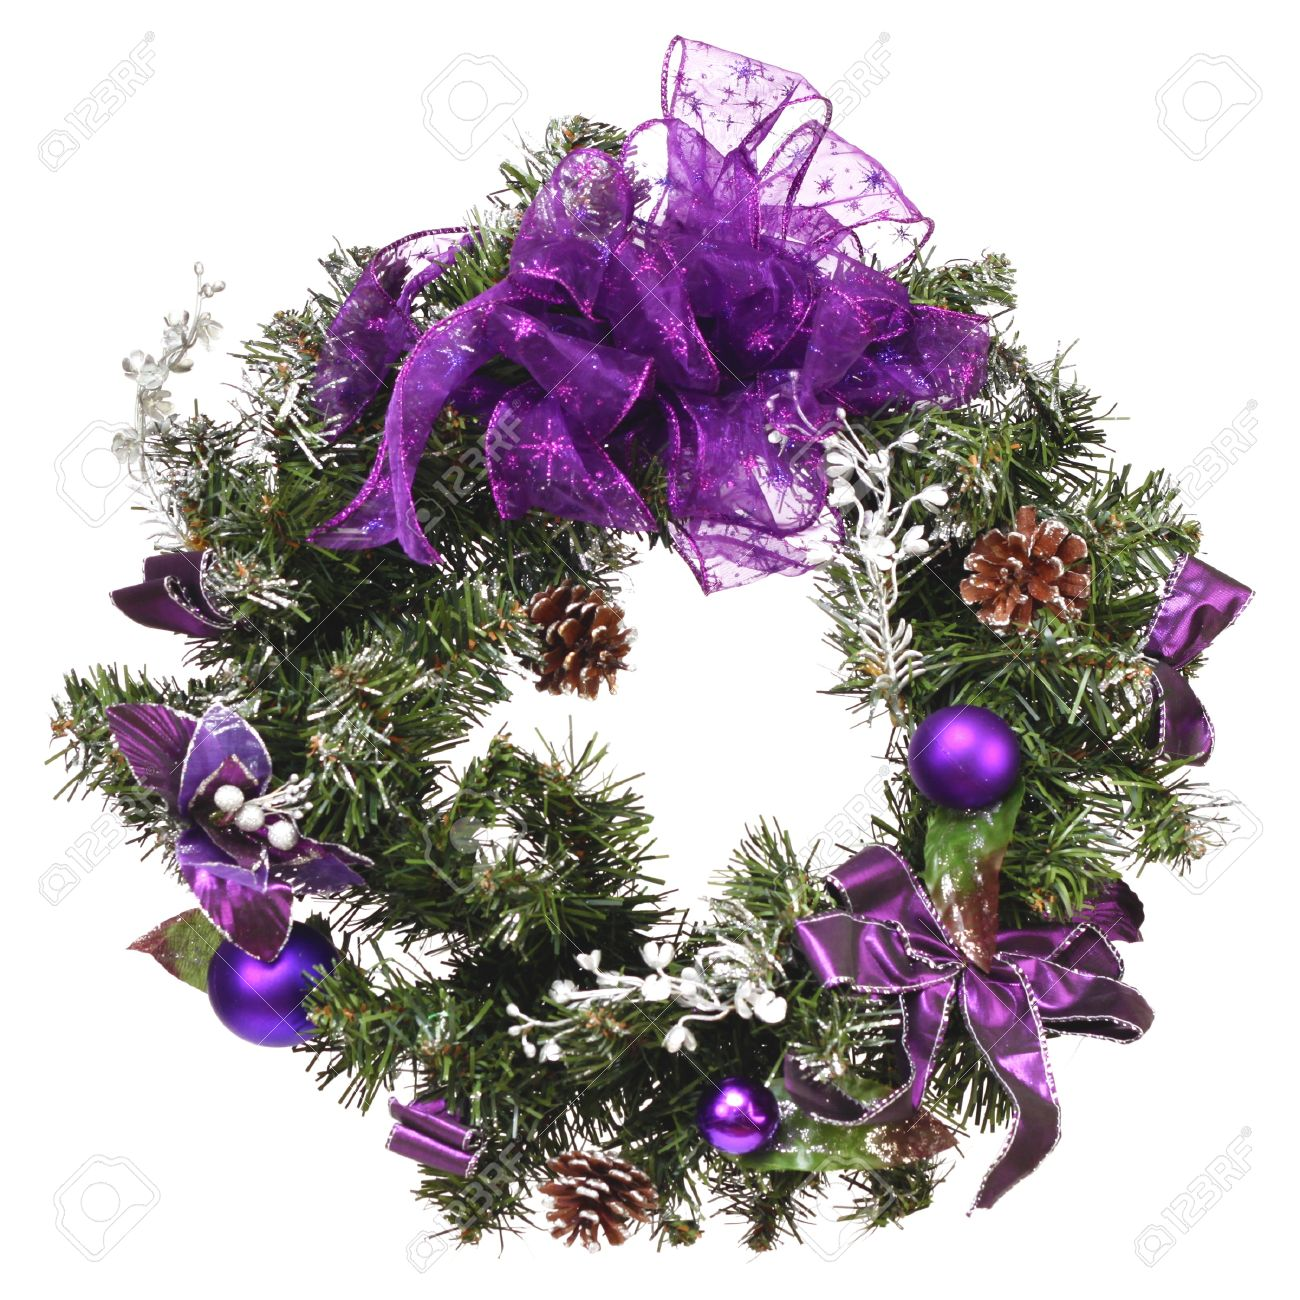 Small Christmas Wreaths.Unique Small Christmas Wreath With Purples Isolated On White